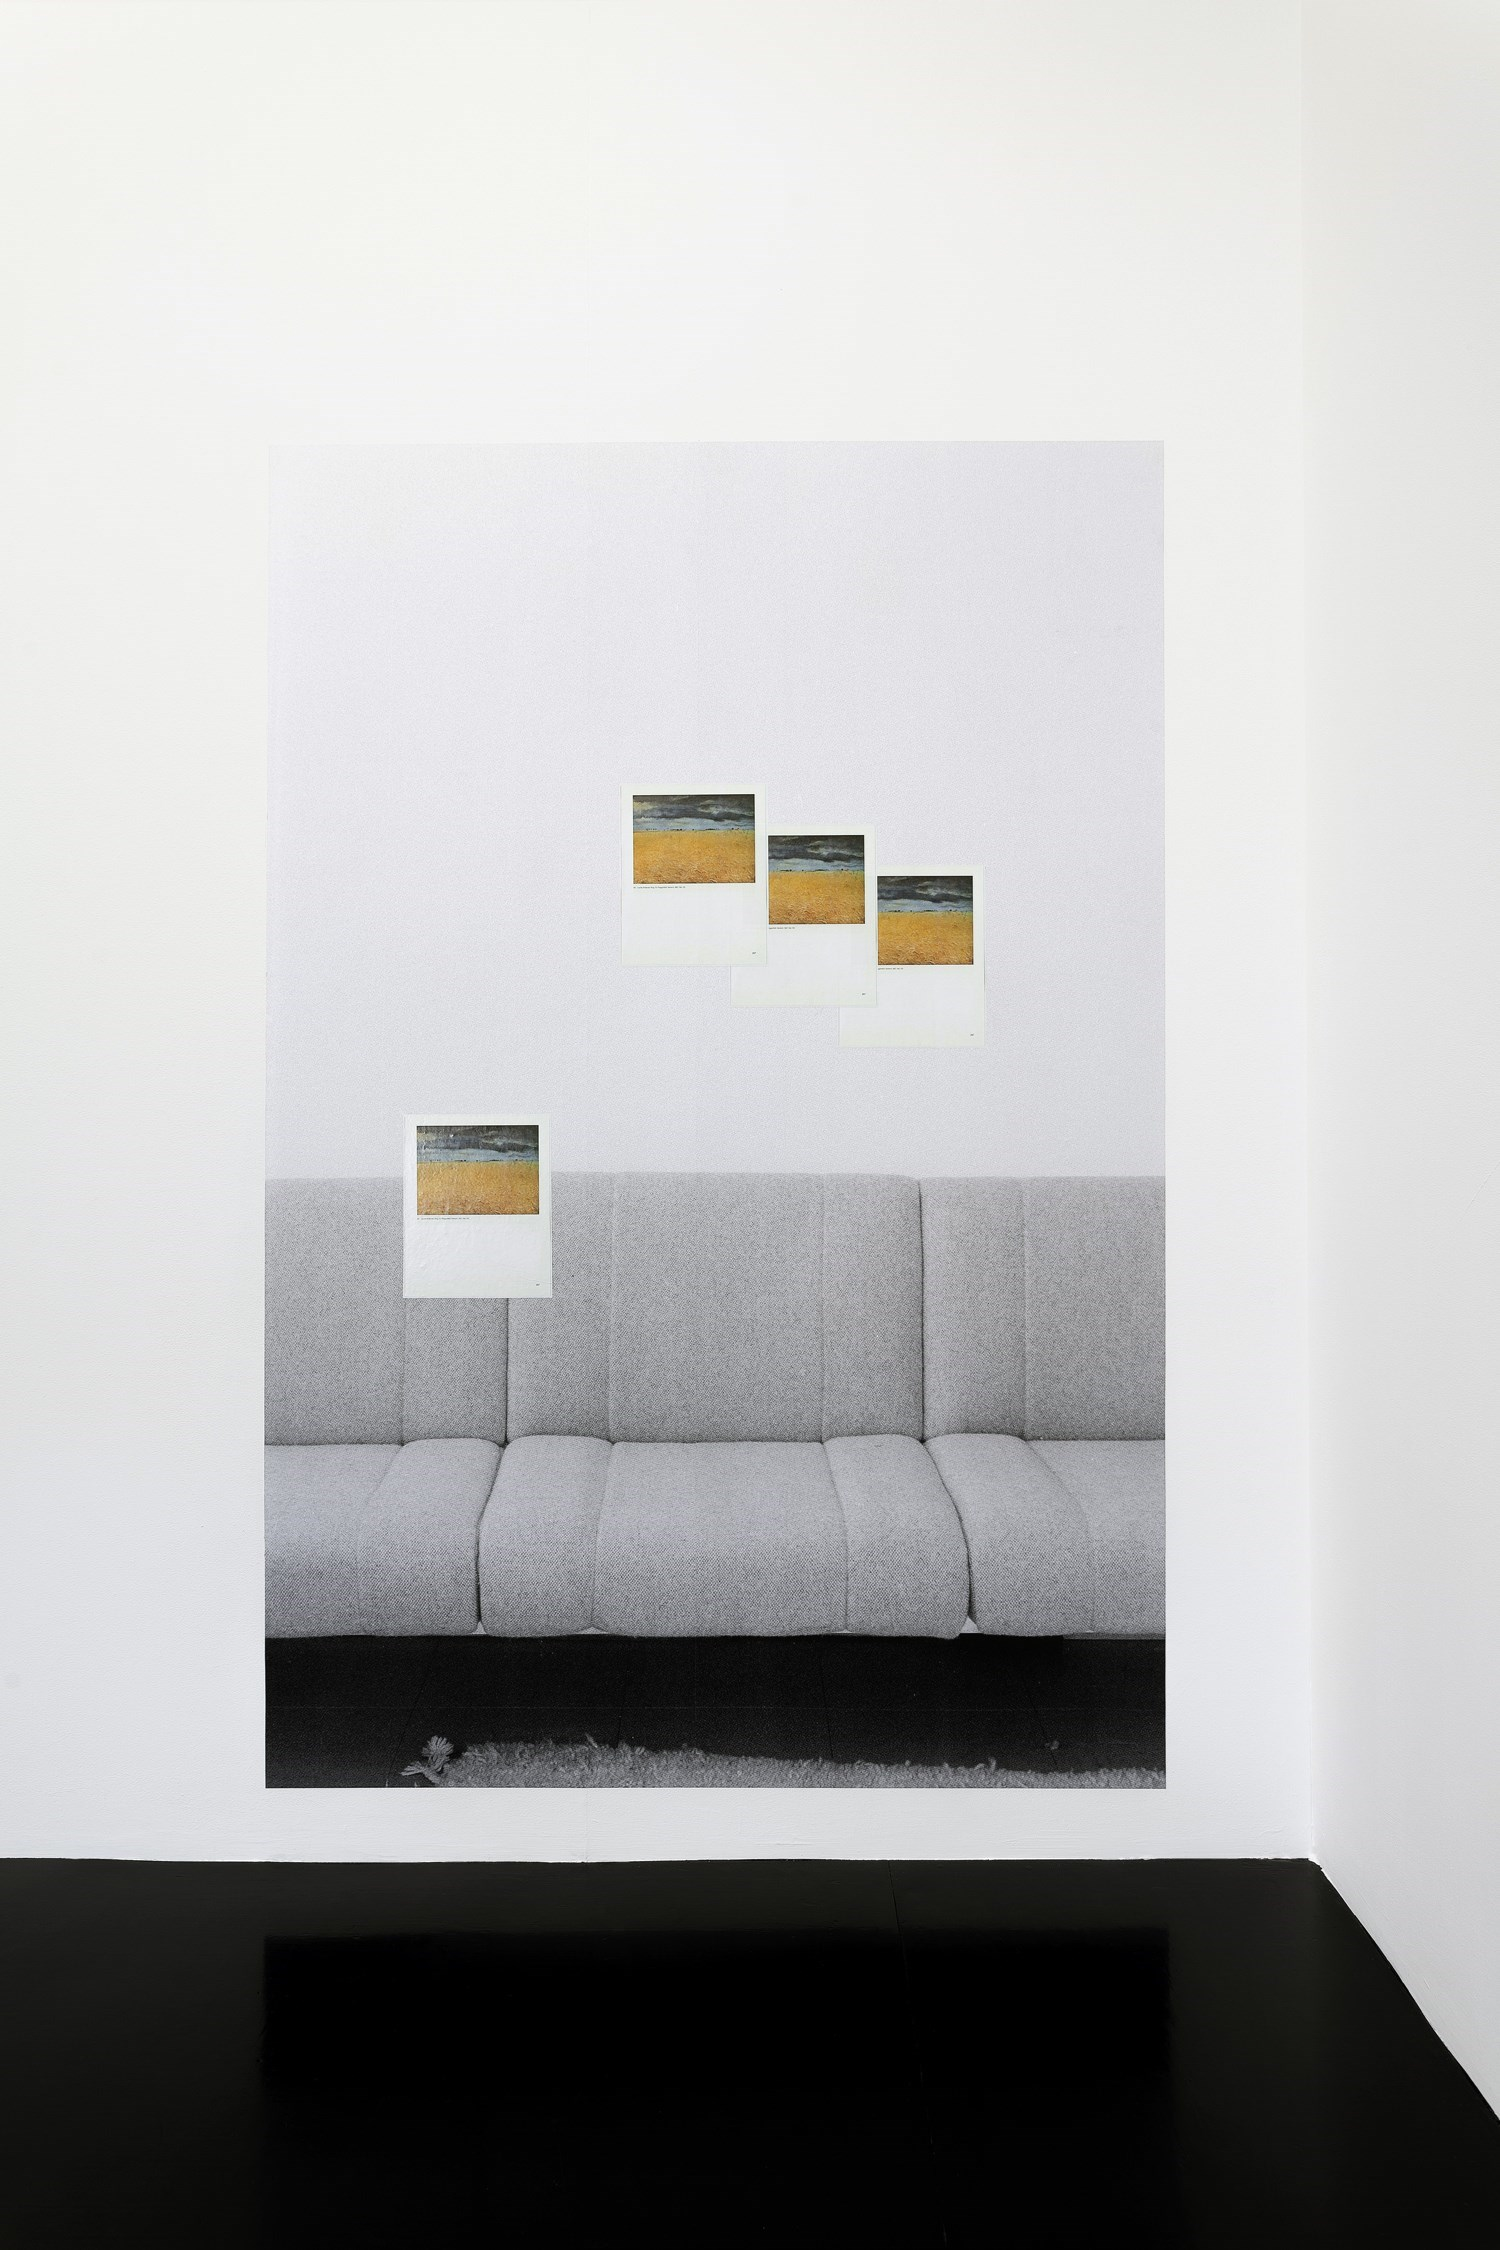 Field of Rye. Seeland (Laurits Anderson Ring)—Dessauer Strasse,<br />220 cm x 130 cm, b&w prints and laser prints, 2016<br />Installation view Koppe Astner, Glasgow